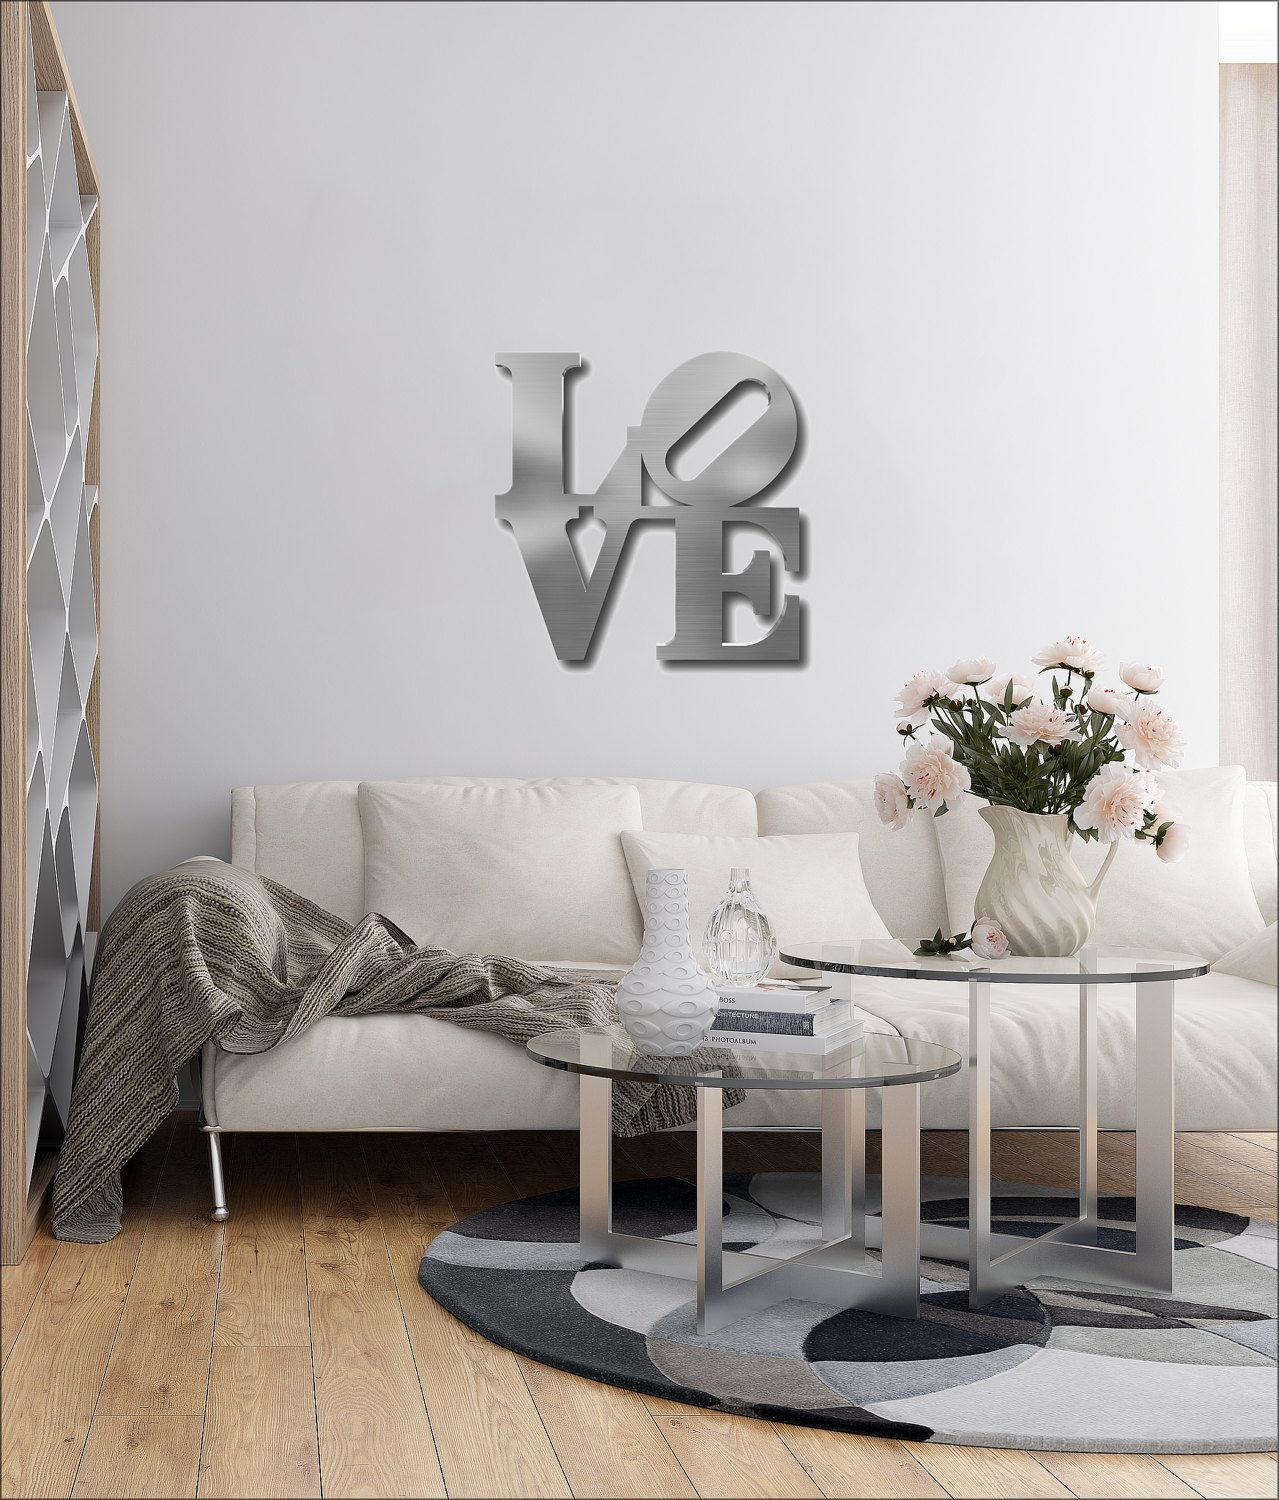 Contemporary Metal Wall Art love metal wall art, love wall decor, word art, contemporary metal